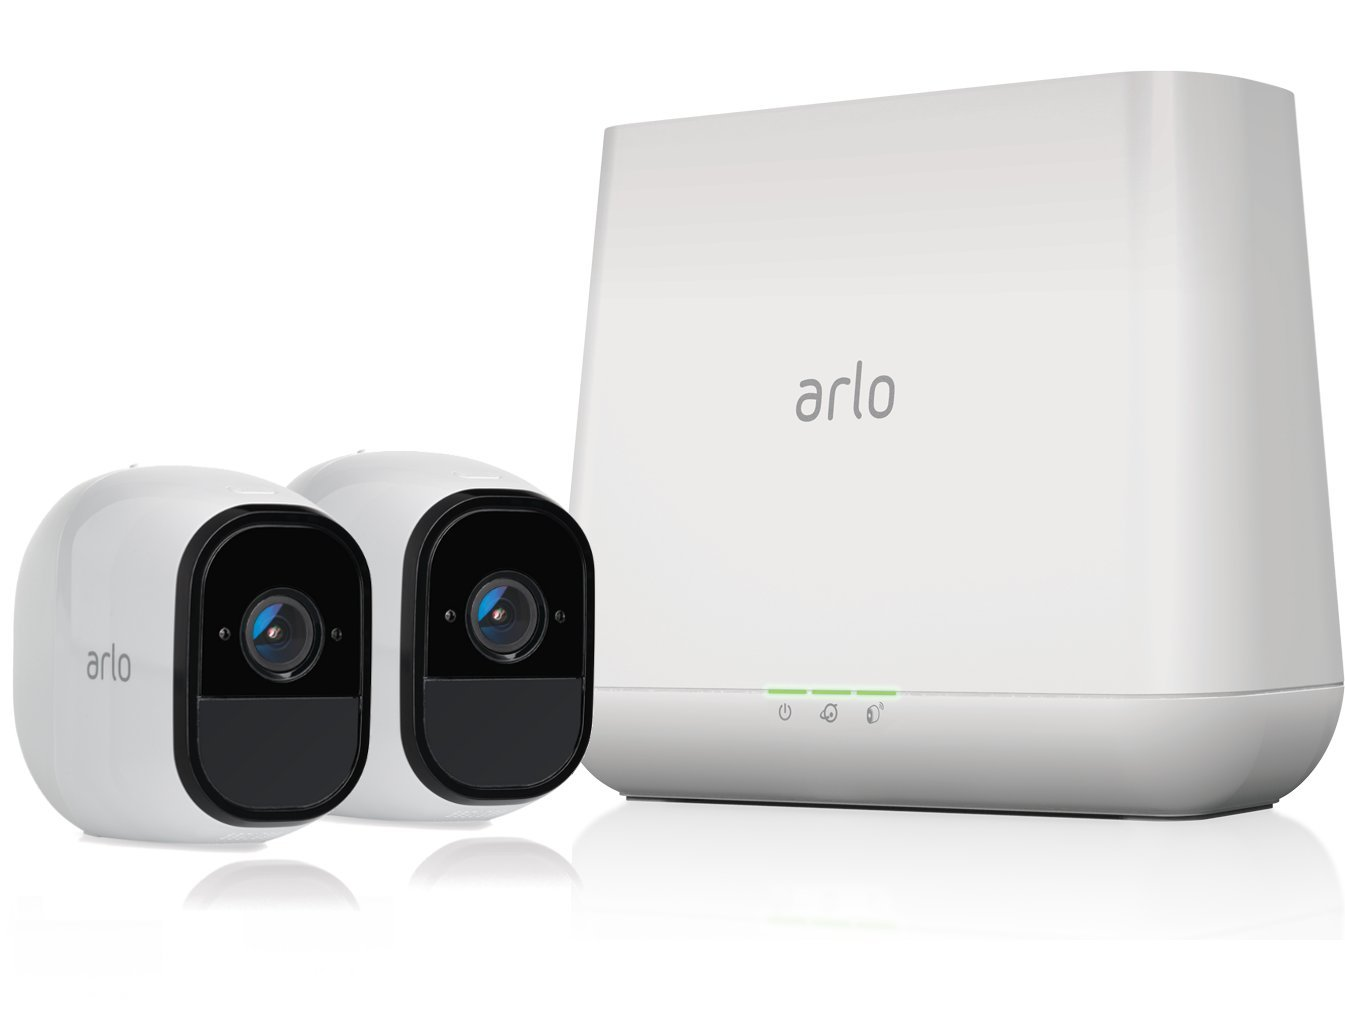 Arlo Pro by NETGEAR Security System with Siren – 2 Rechargeable Wire-Free HD Cameras with Audio, Indoor/Outdoor, Night Vision (VMS4230) by NETGEAR